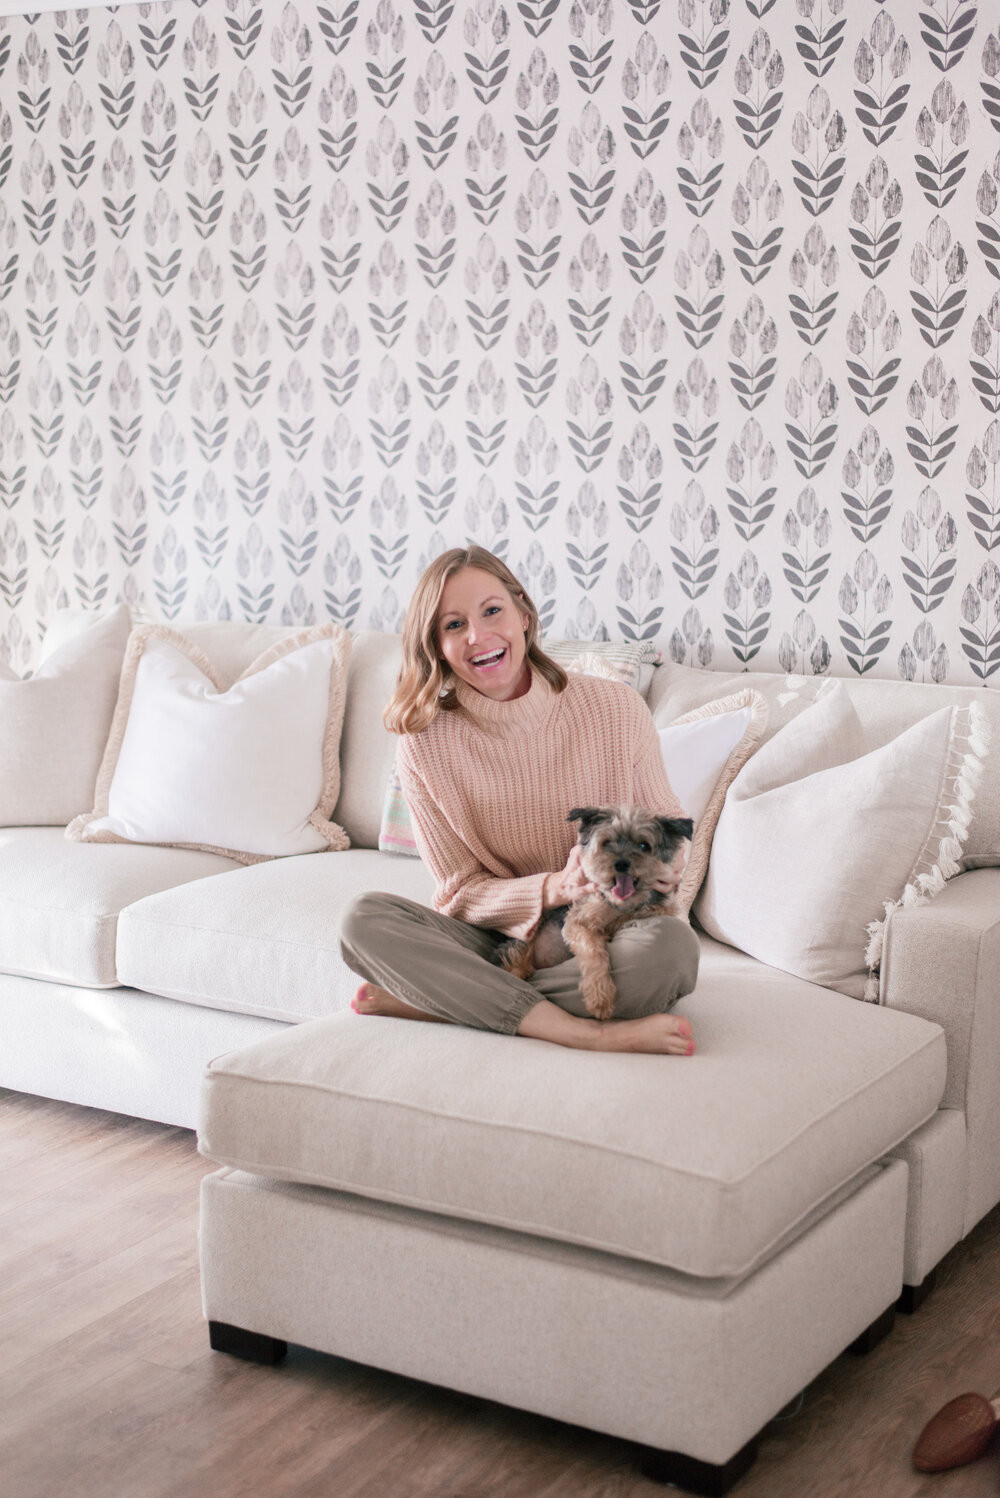 Pottery Barn Townsend White Sectional Couch in Performance Boucle Oatmeal by Top US Lifestyle Blog Love and Specs